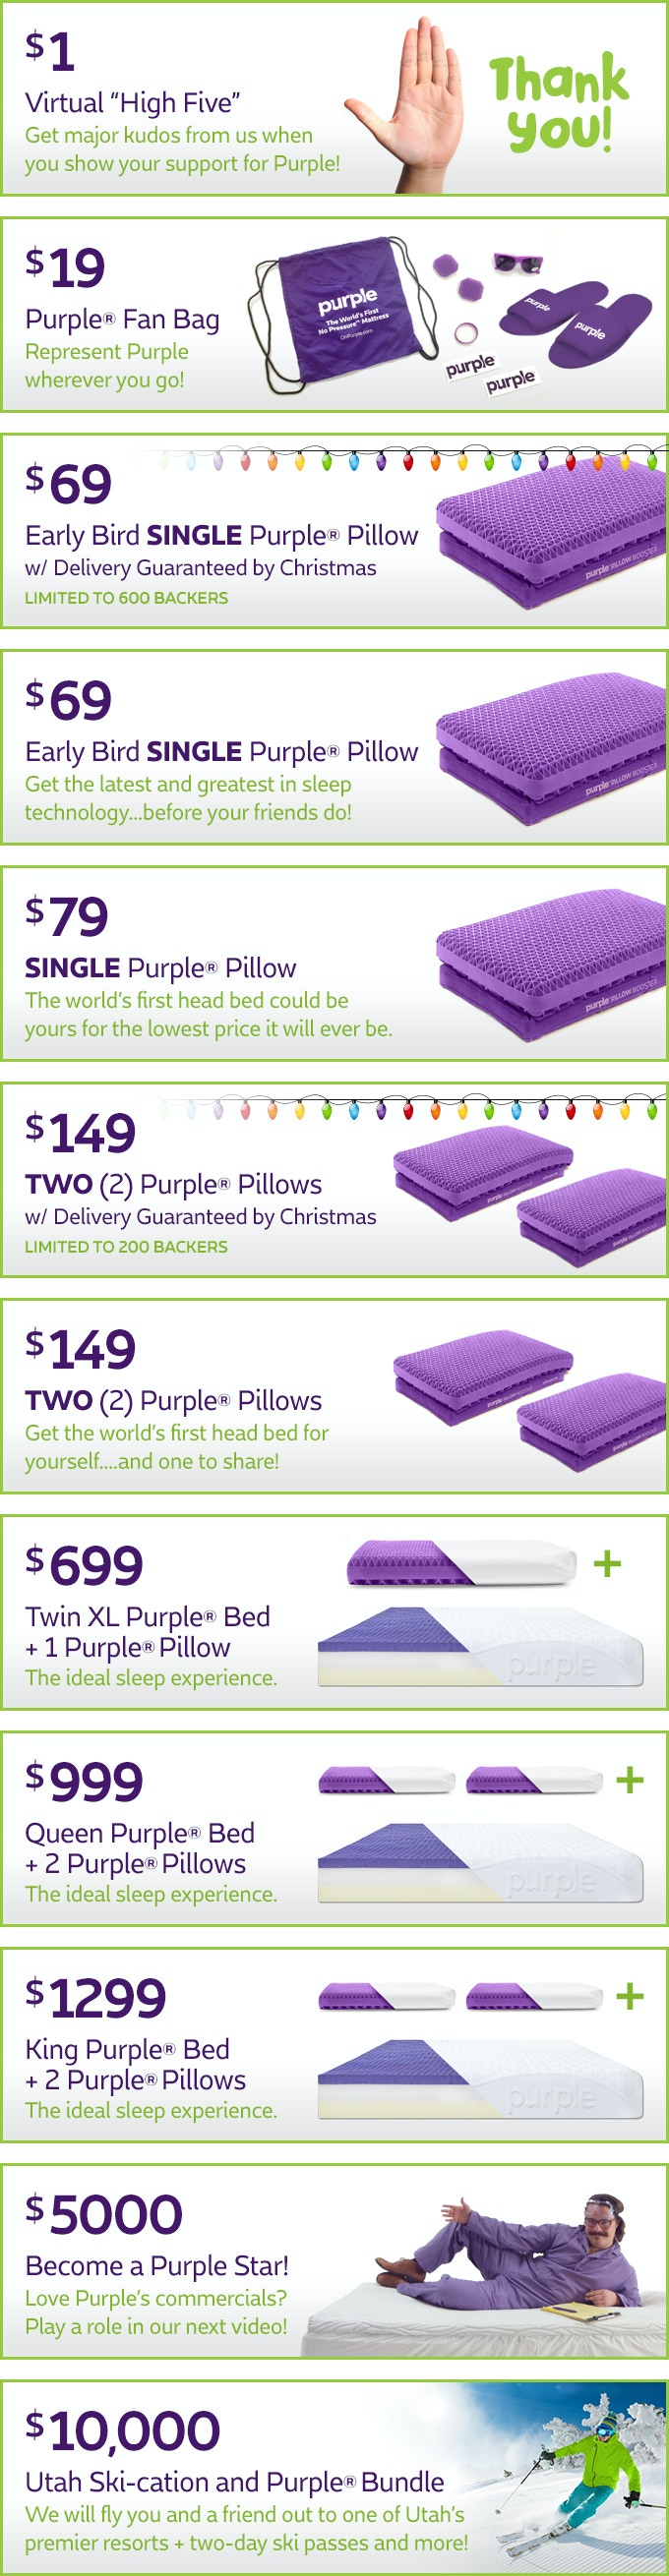 review friends a sleep buys after hyper month pillow elastic with of the purple polymer